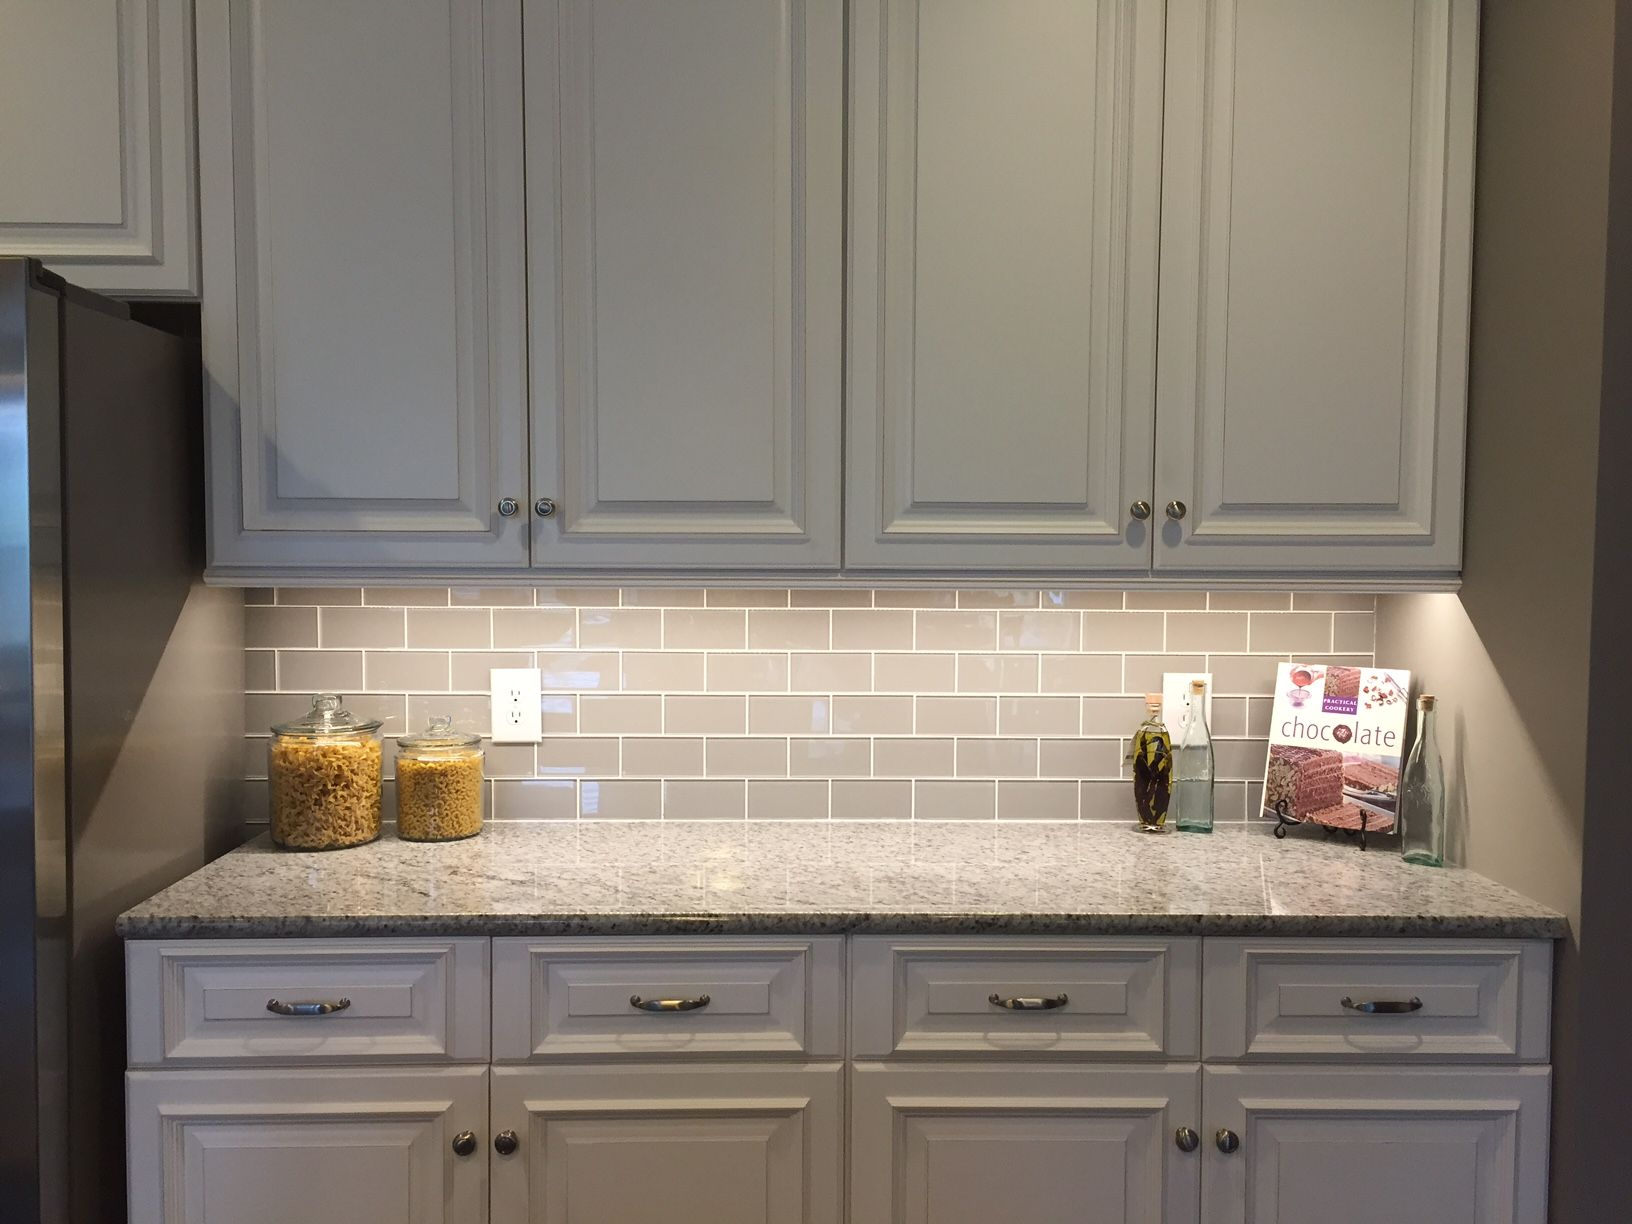 smoke glass subway tile subway tile backsplash subway ceramic tile kitchen subway tile backsplash kitchen